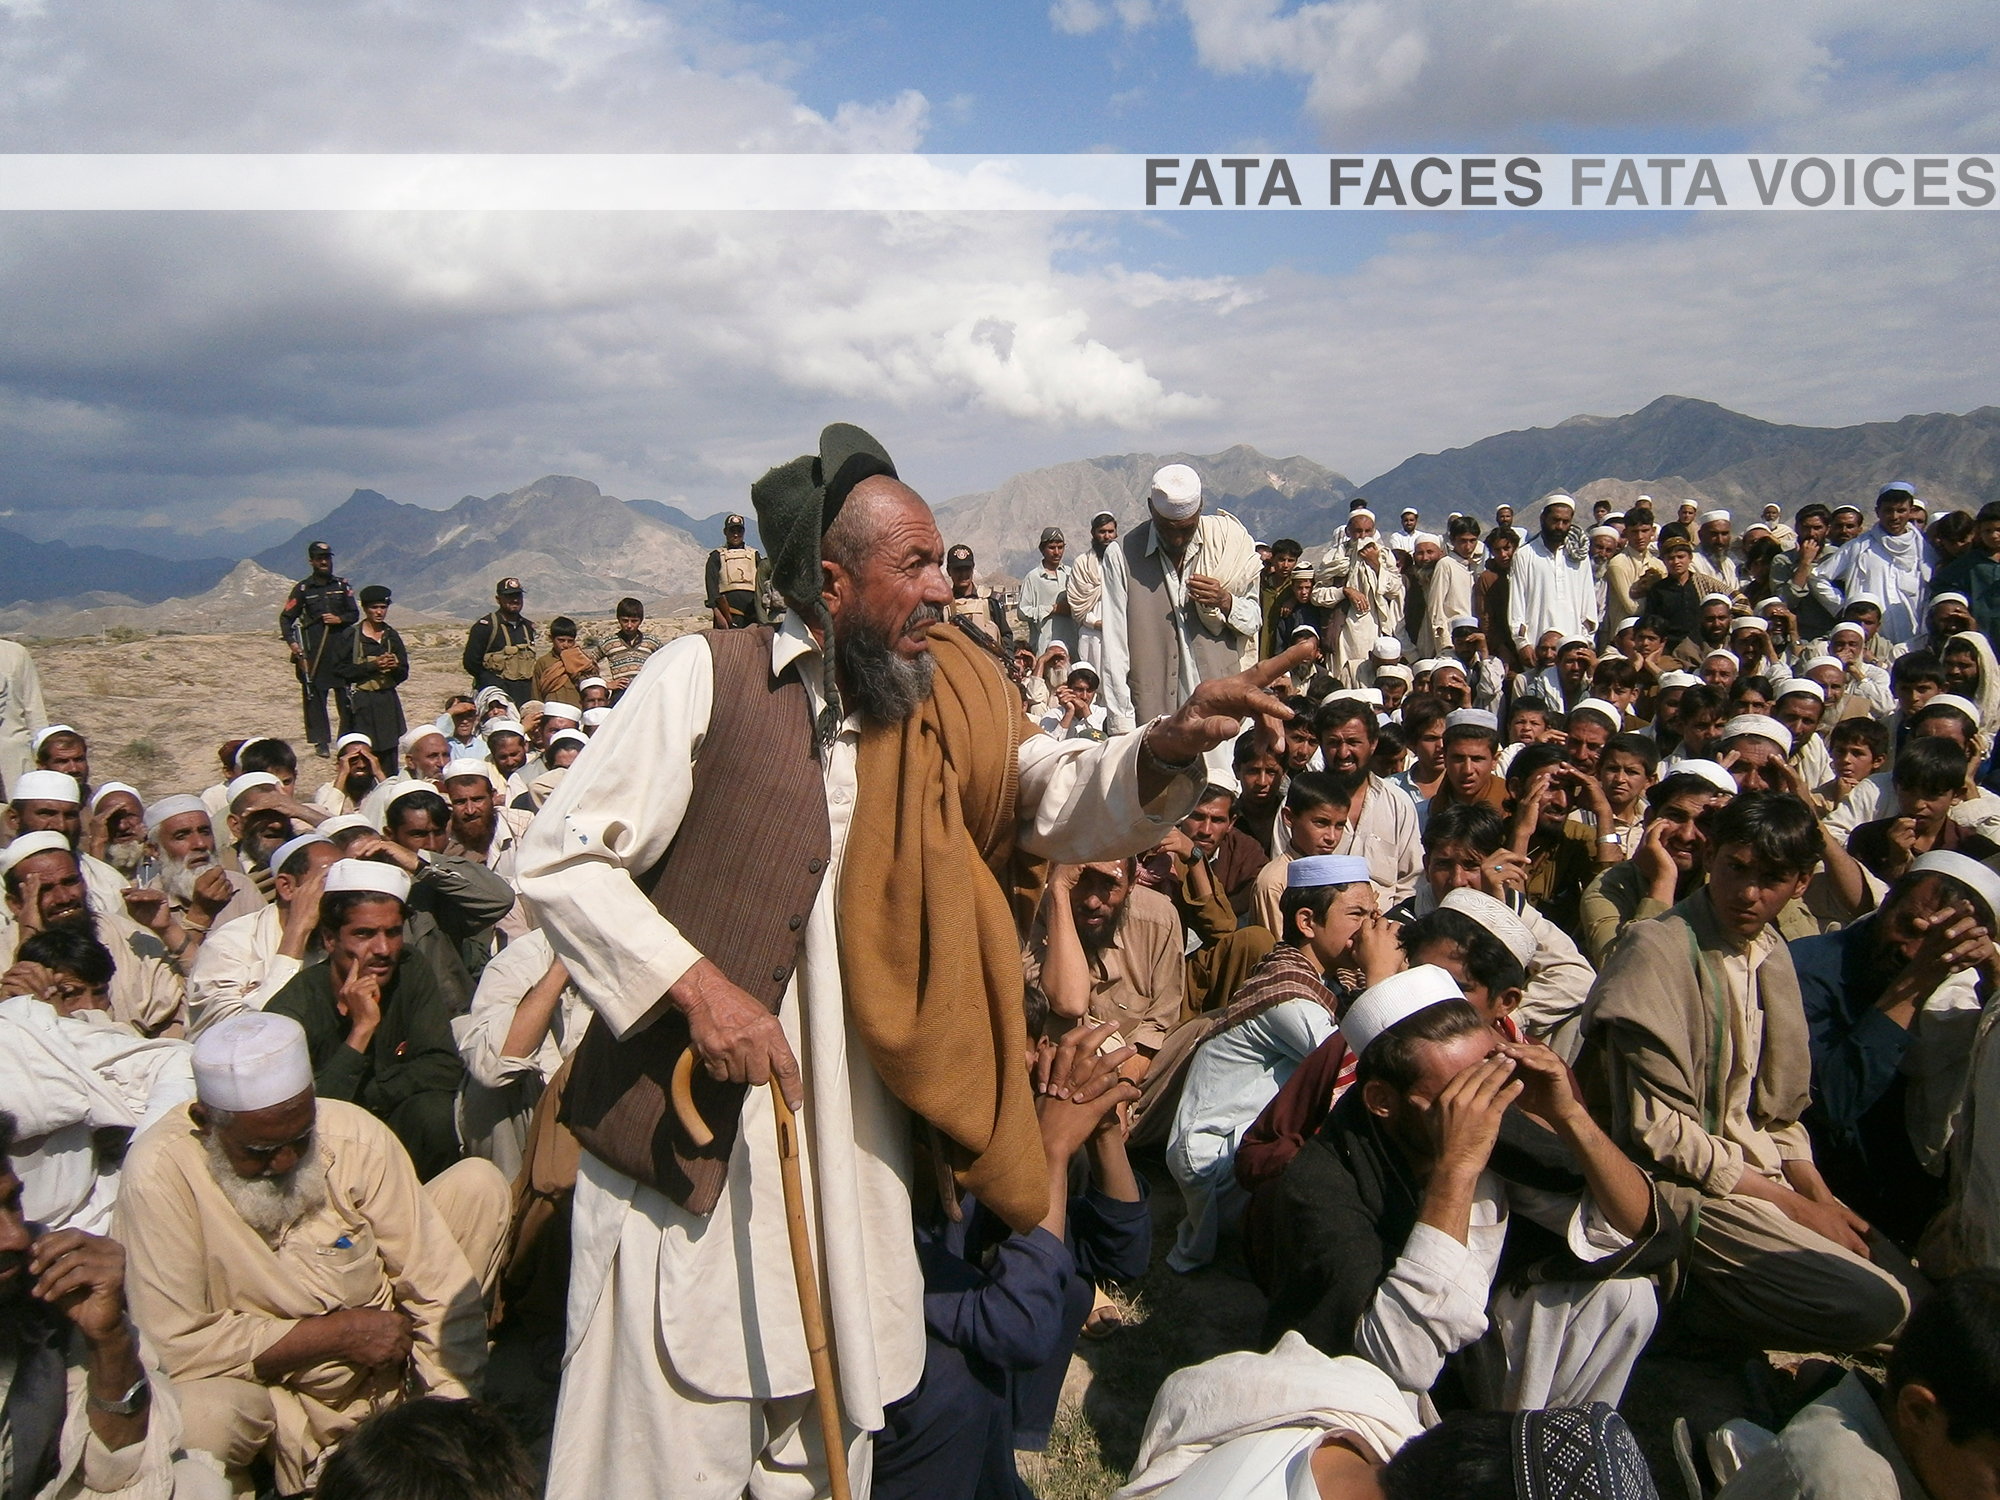 An elderly man speaks at a traditional meeting in the FATA (photo credit: FATA Reforms/Flickr)